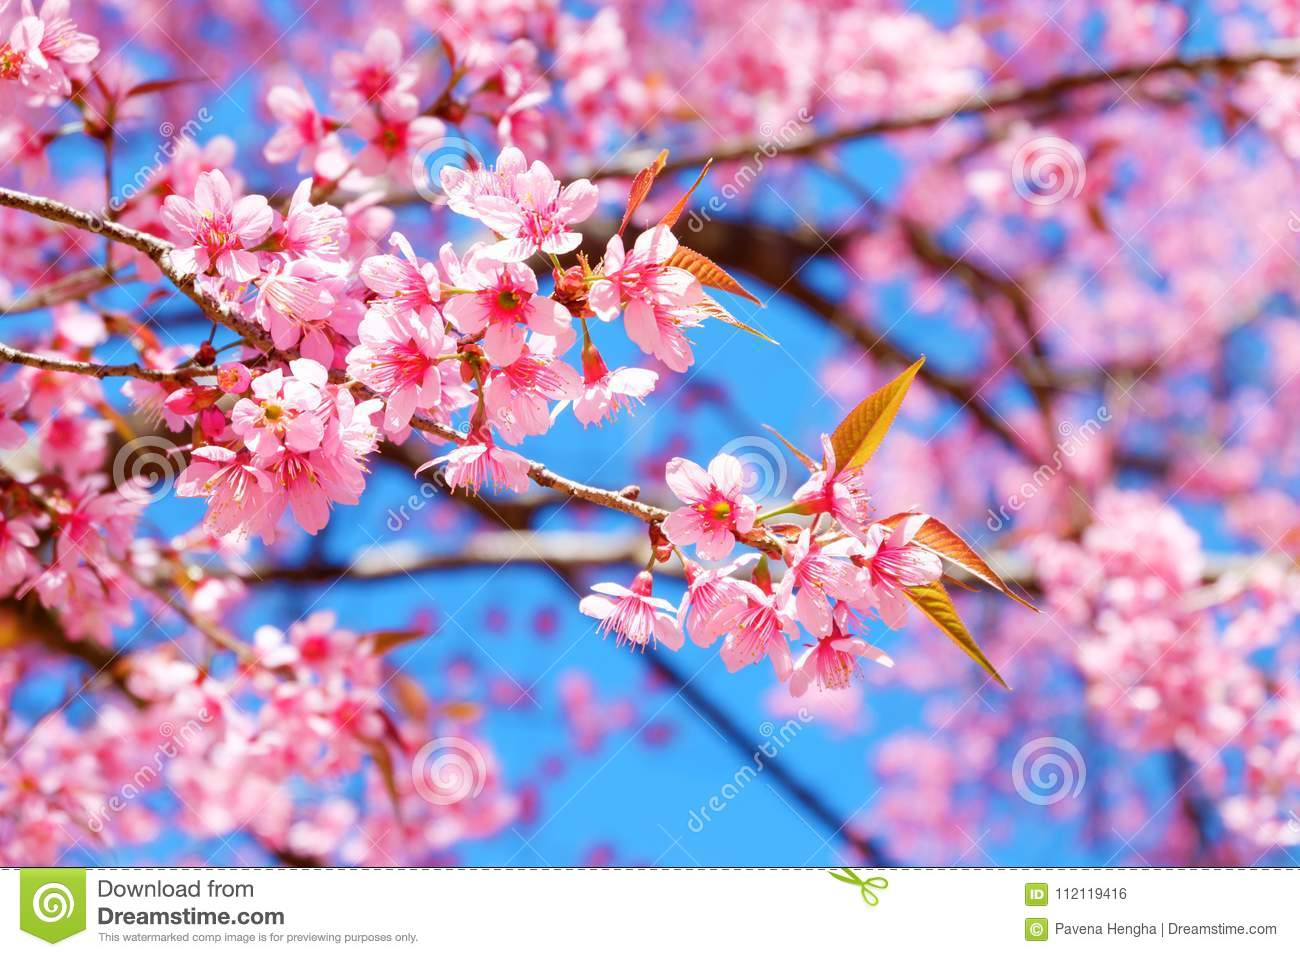 Beautiful cherry blossom pink sakura flower with blue sky in spring beautiful cherry blossom pink sakura flower with blue sky in spring mightylinksfo